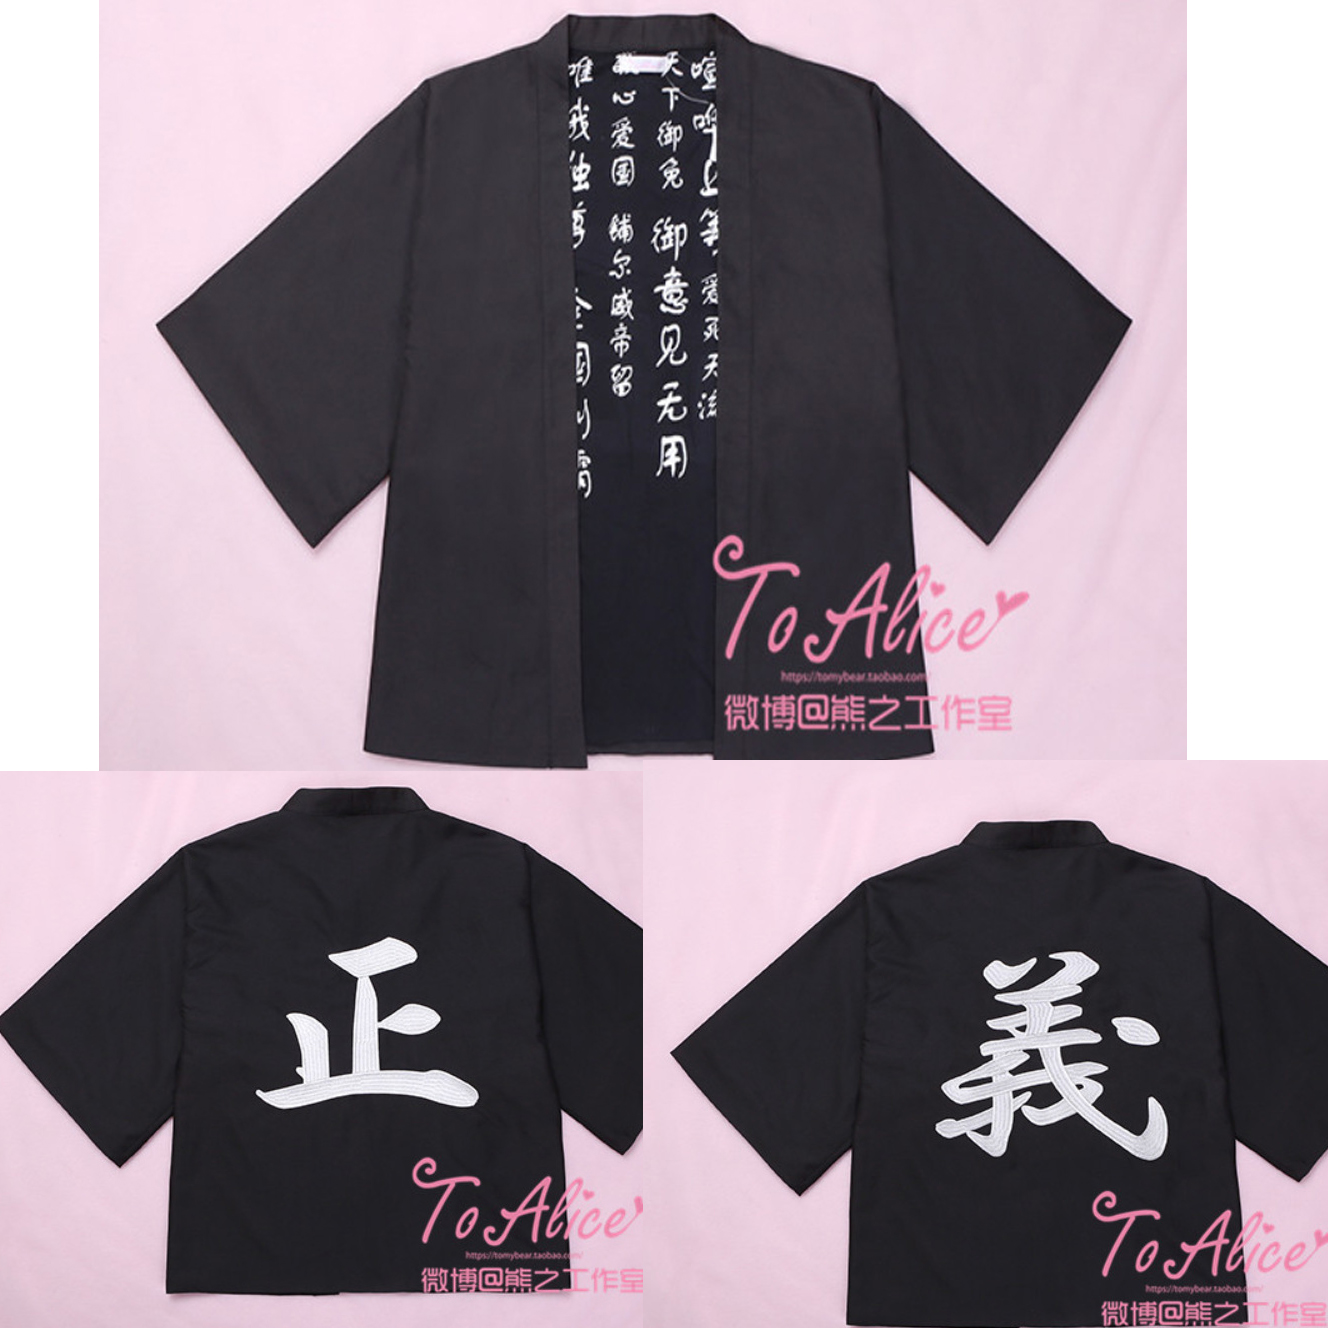 Women's Clothing Punctual Japanese Chinese Letter Embroidery Bad/poster/justice Print Funny Kimono Loose Blouse Streetwear Hip Hop Punk Top Shirt Harajuku Price Remains Stable